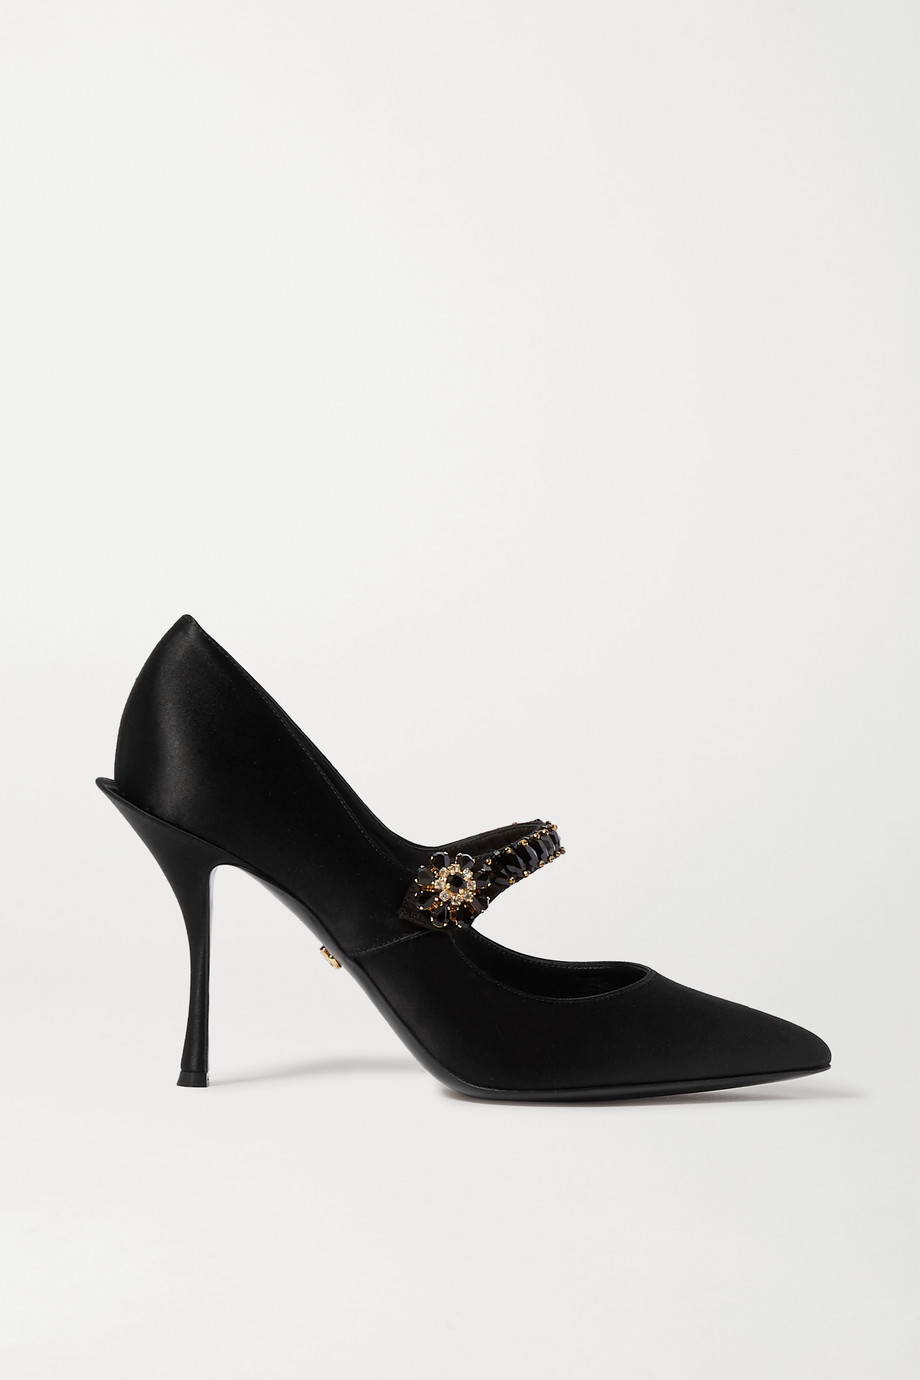 Dolce & Gabbana Mary-Jane-Pumps aus Satin mit Kristallen